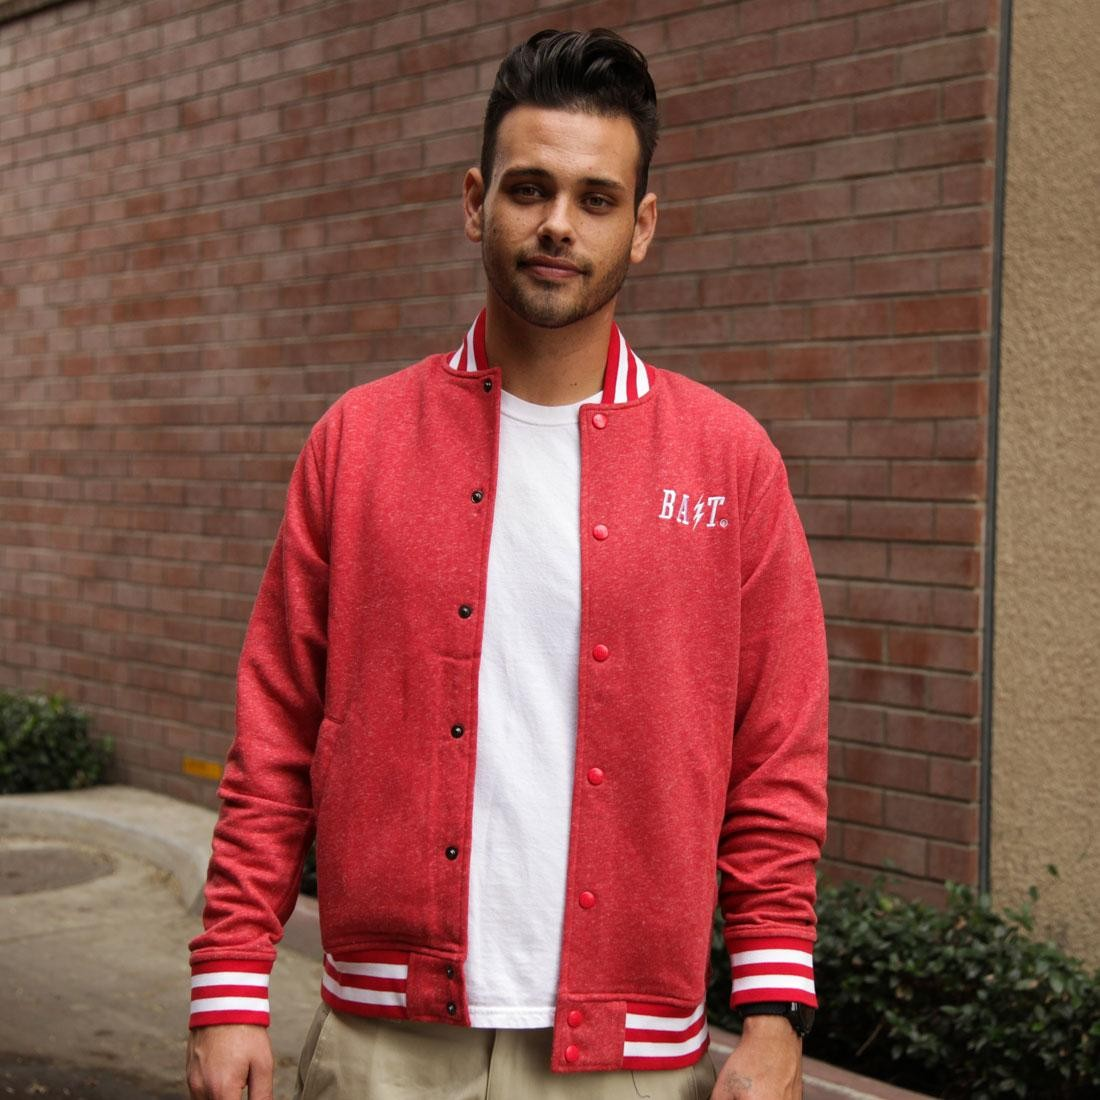 BAIT Baseball Jacket (red)